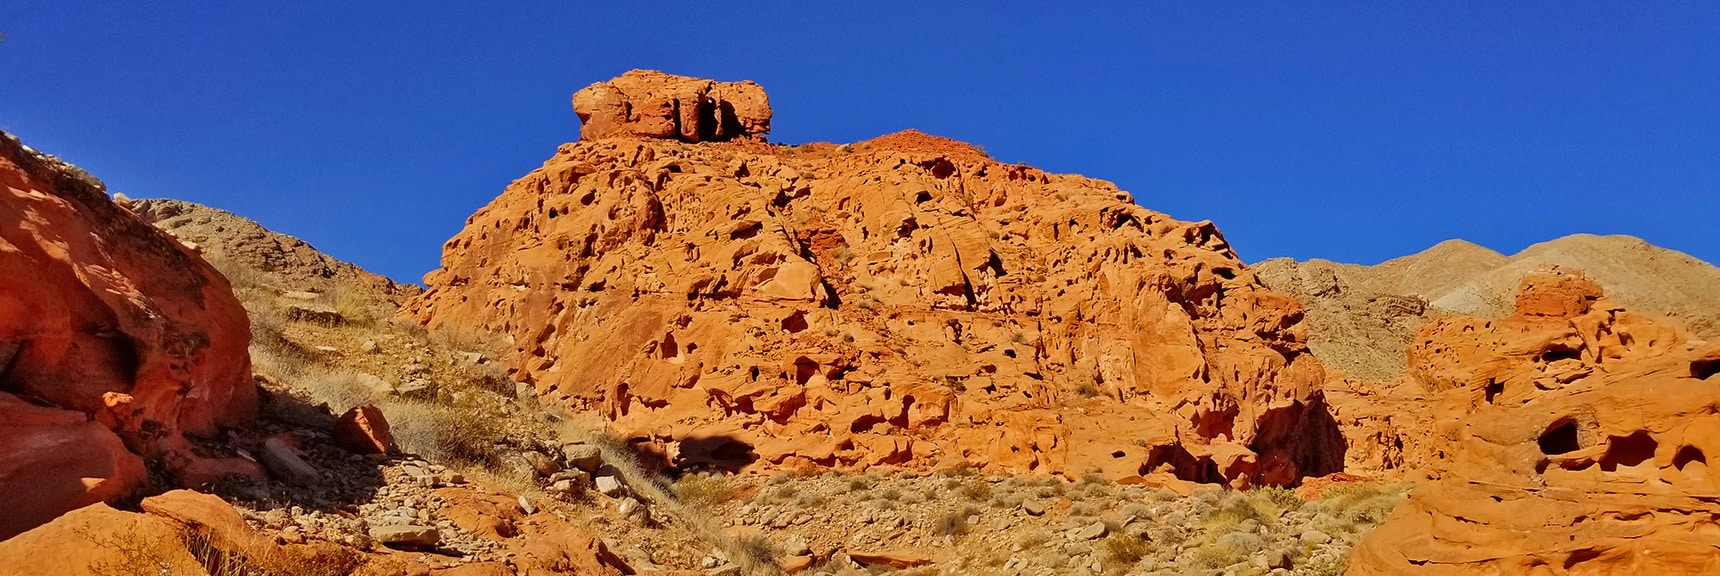 Huge Mound of Jurassic Era Aztec Red Rock | Bowl of Fire, Lake Mead National Recreation Area, Nevada